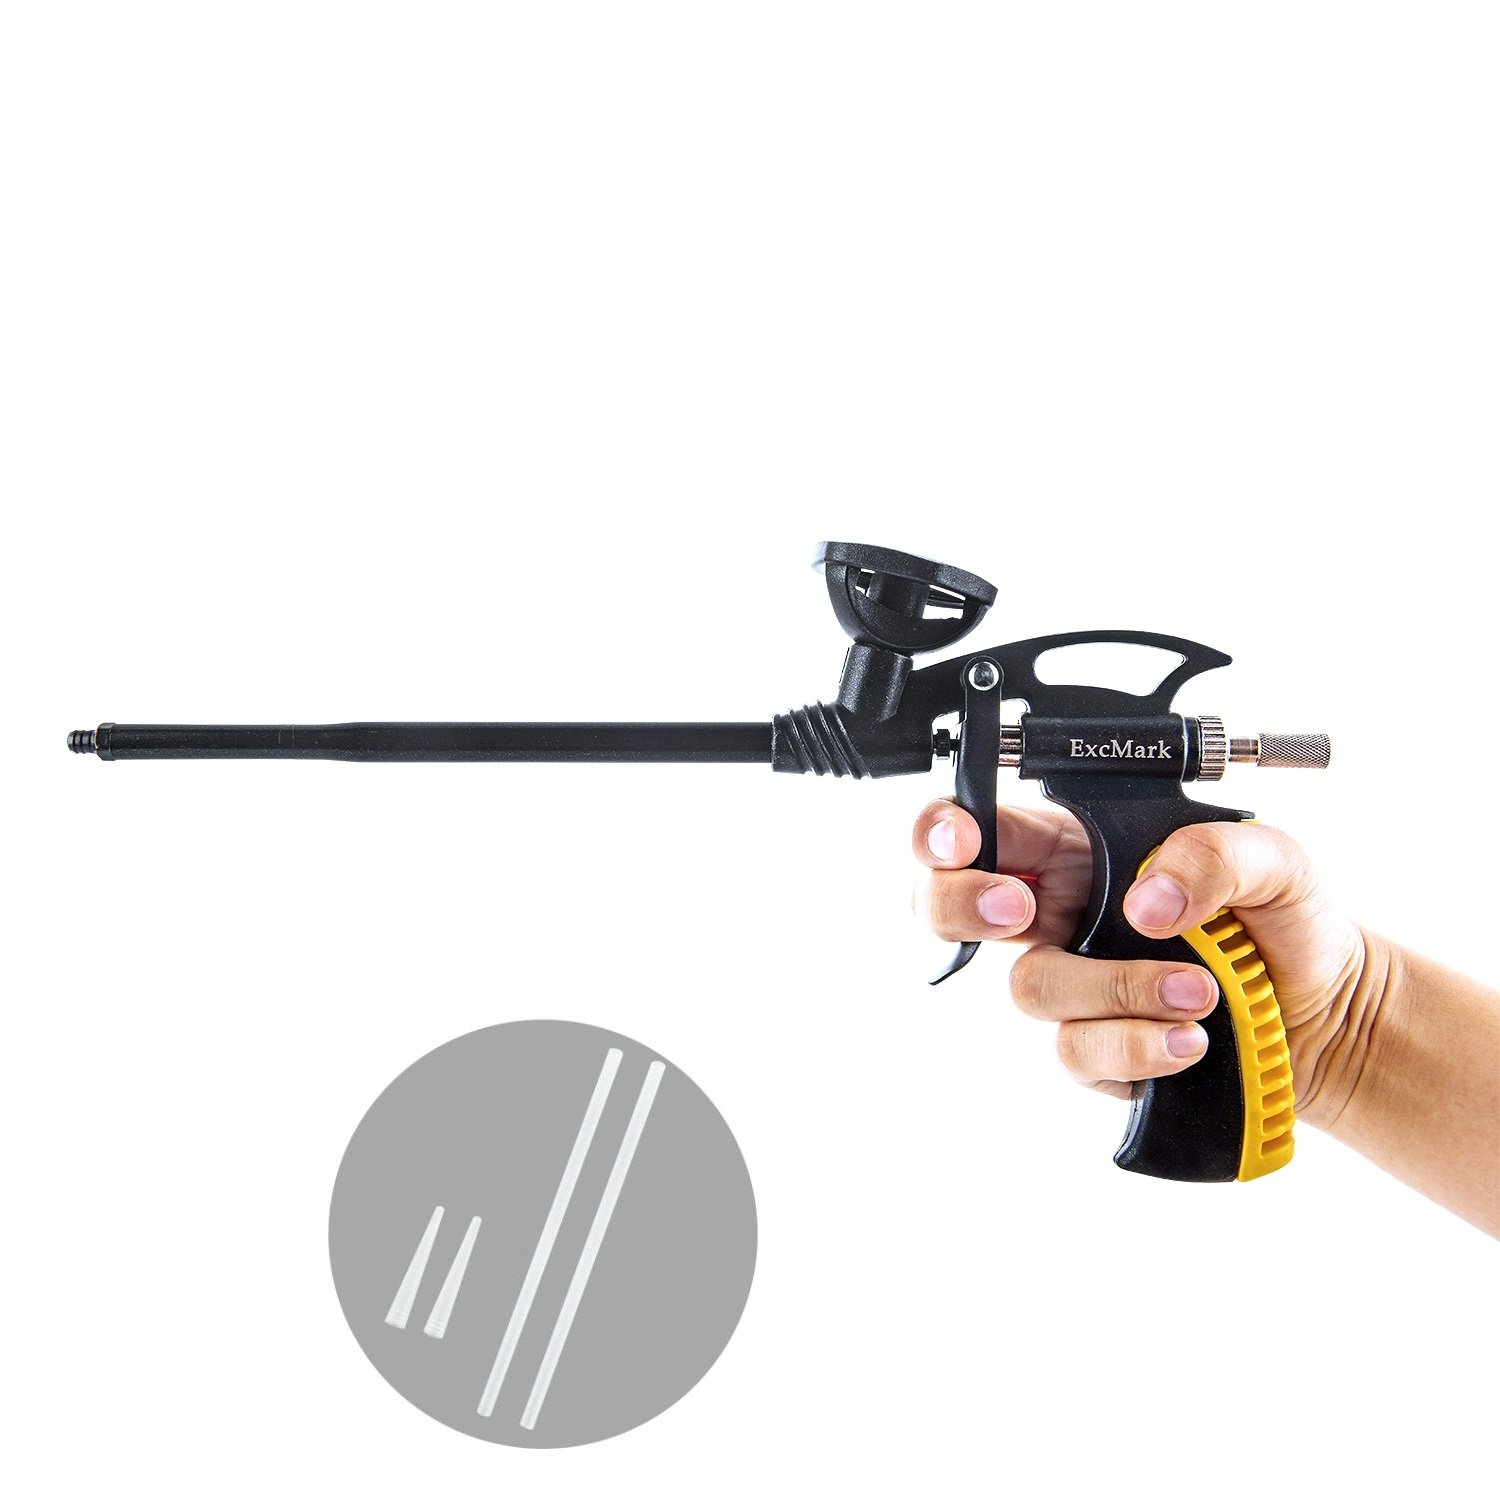 ExcMark Foam Gun, Foam Dispensing Gun, PU Expanding Foaming Gun, Caulking Gun Metal Body Pro Heavy Duty Grade Expanding Spray Application Applicator for Caulking, Filling, Sealing, Home School Office